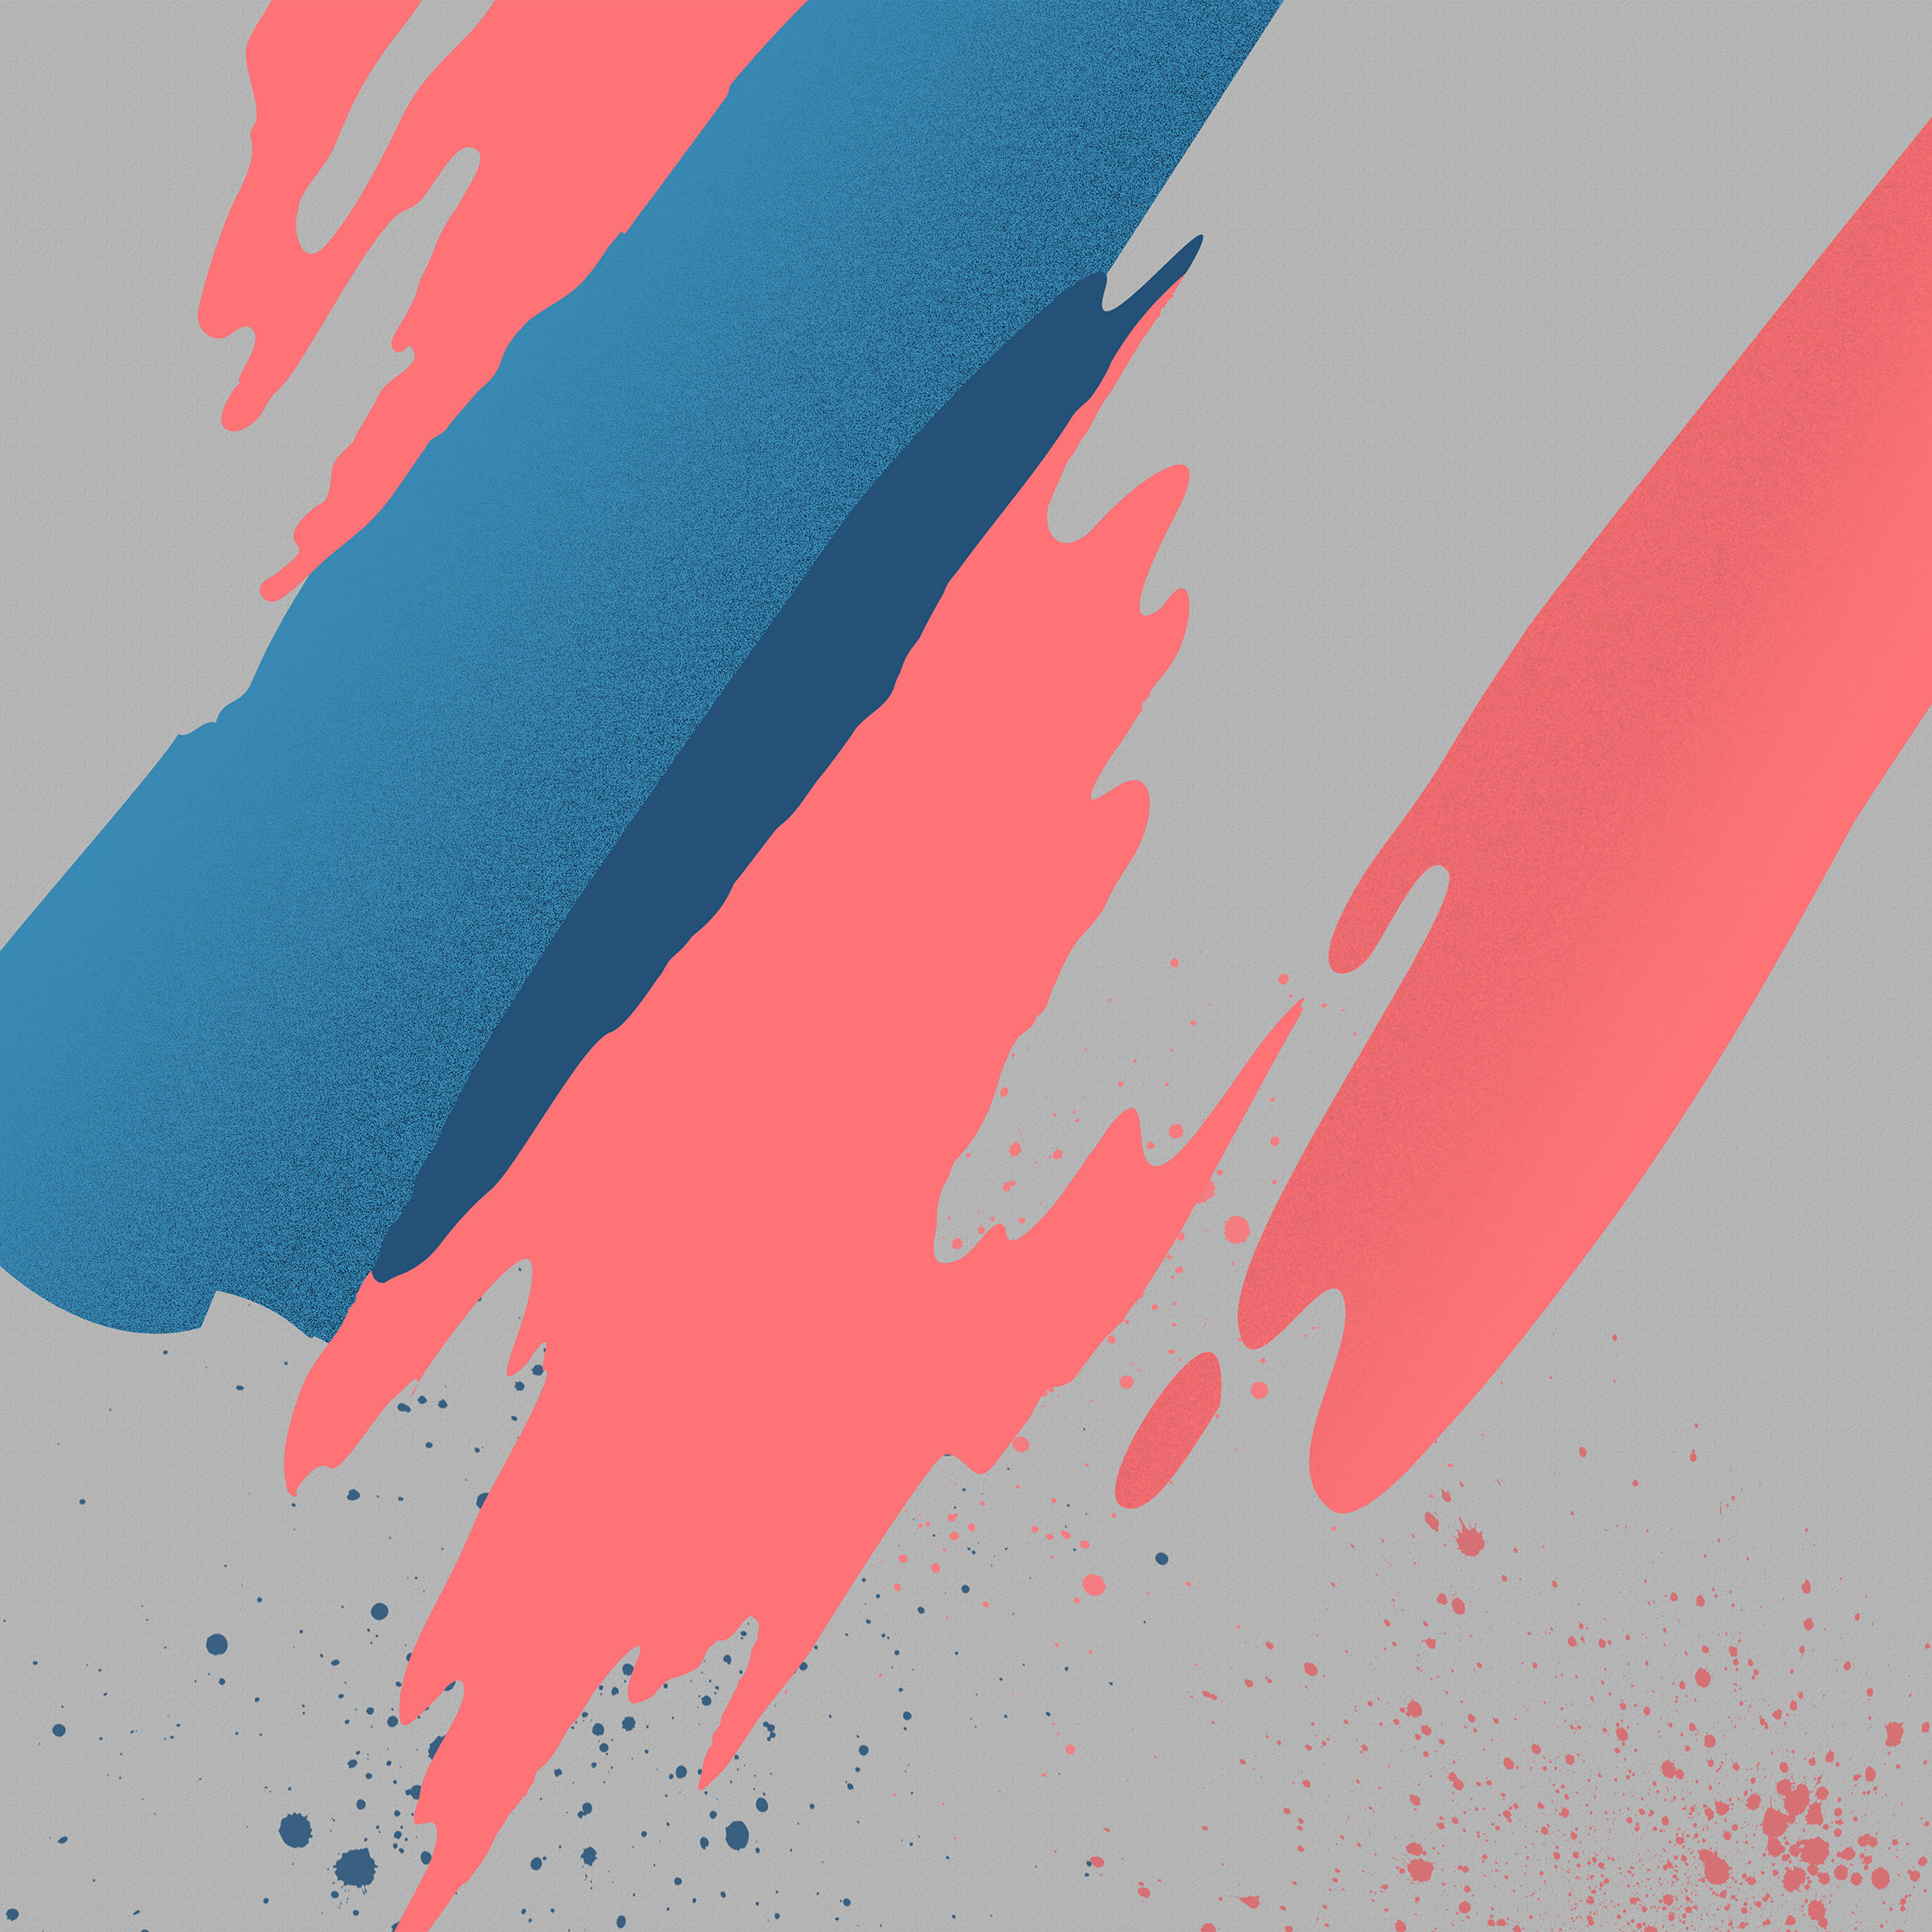 Vs20 Paint Abstract Background Htc Pink Blue Pattern Wallpaper